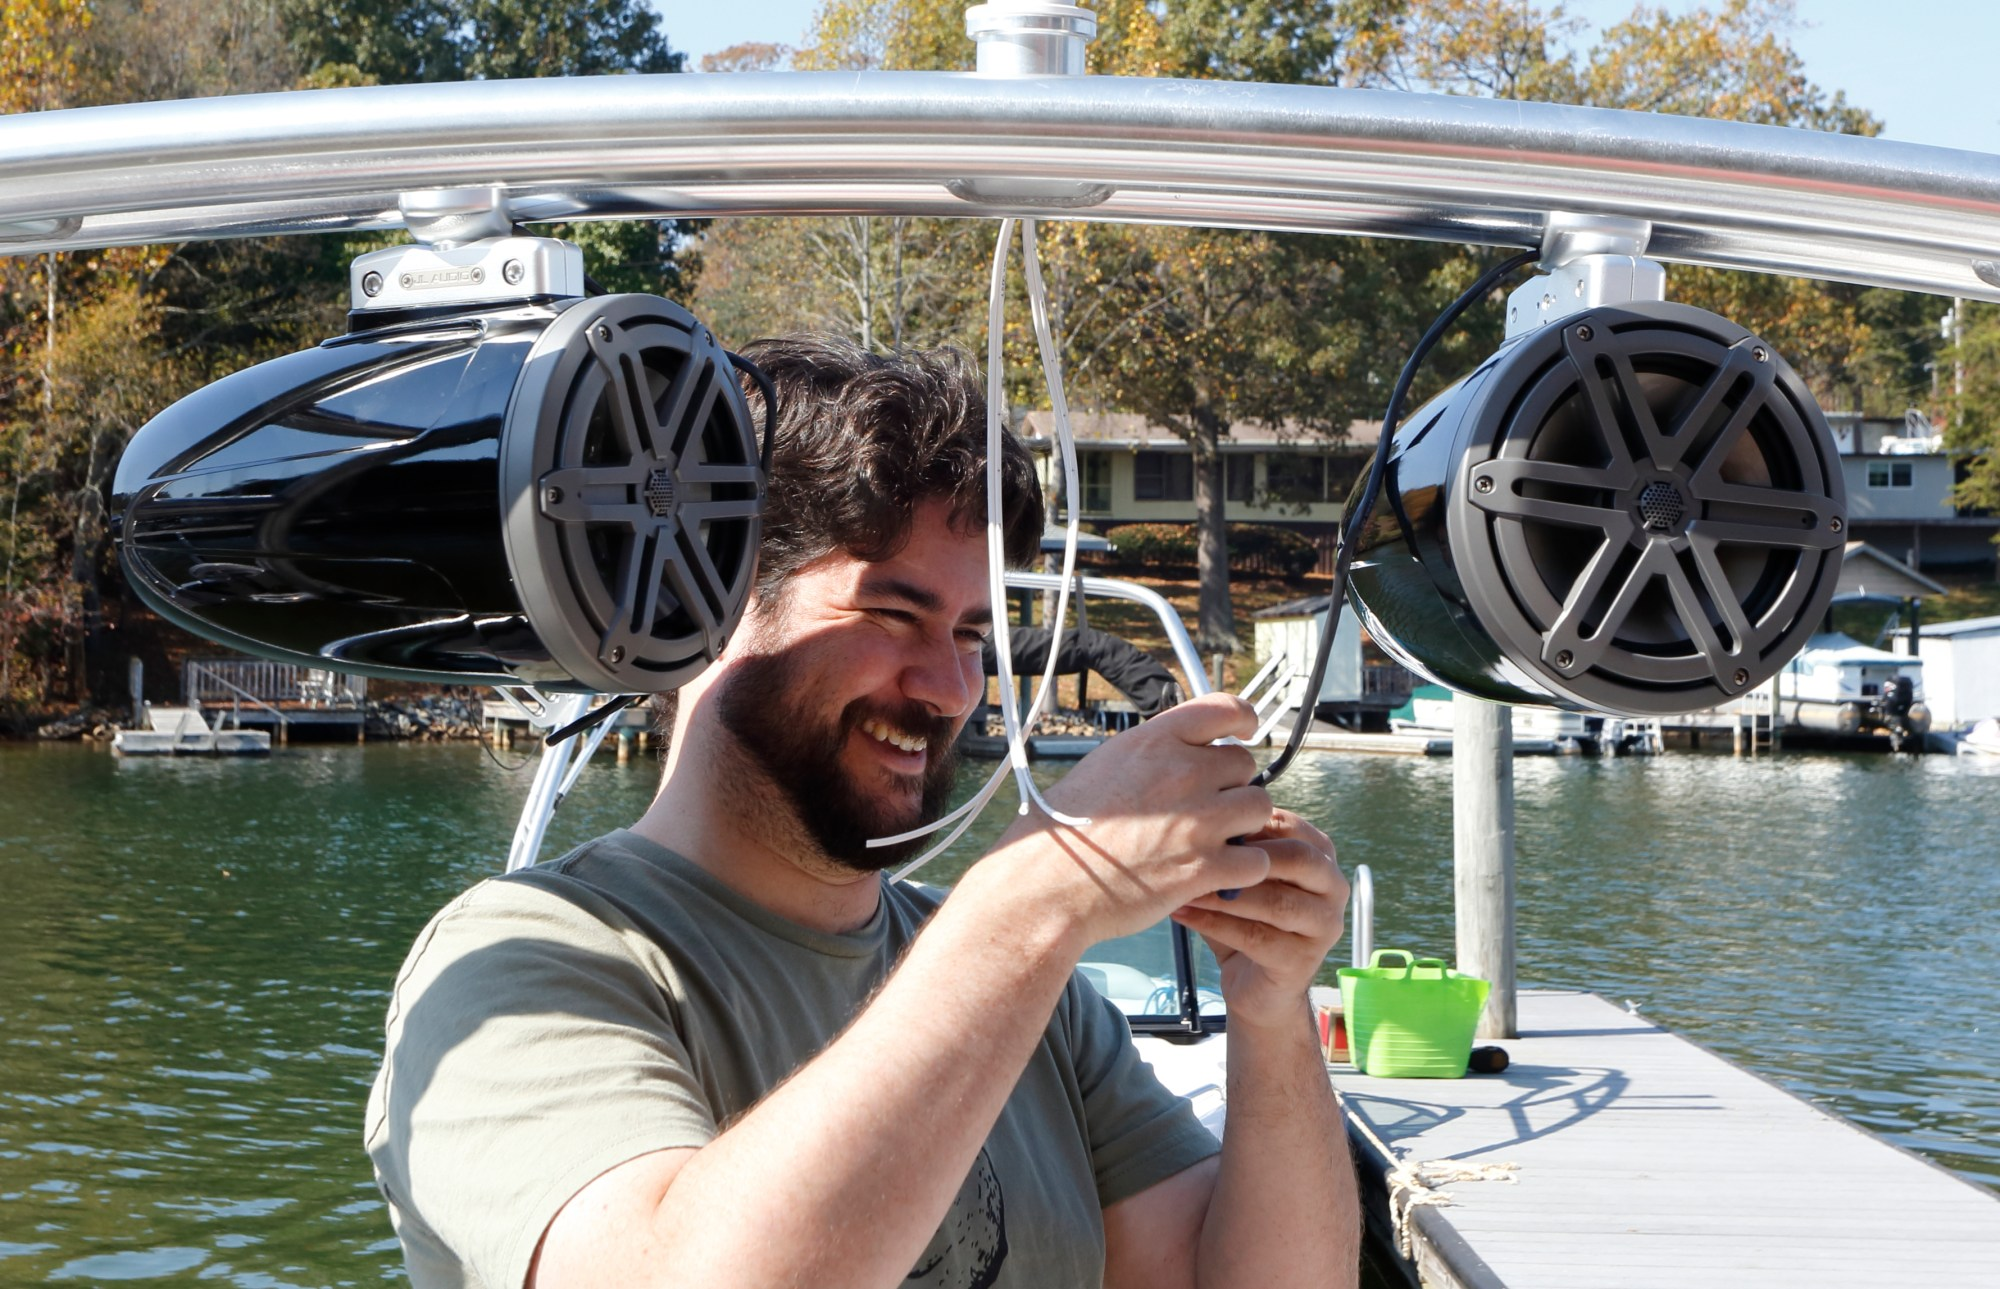 hight resolution of tips for installing tower speakers on a boat wiring new boat speakers wiring boat speakers